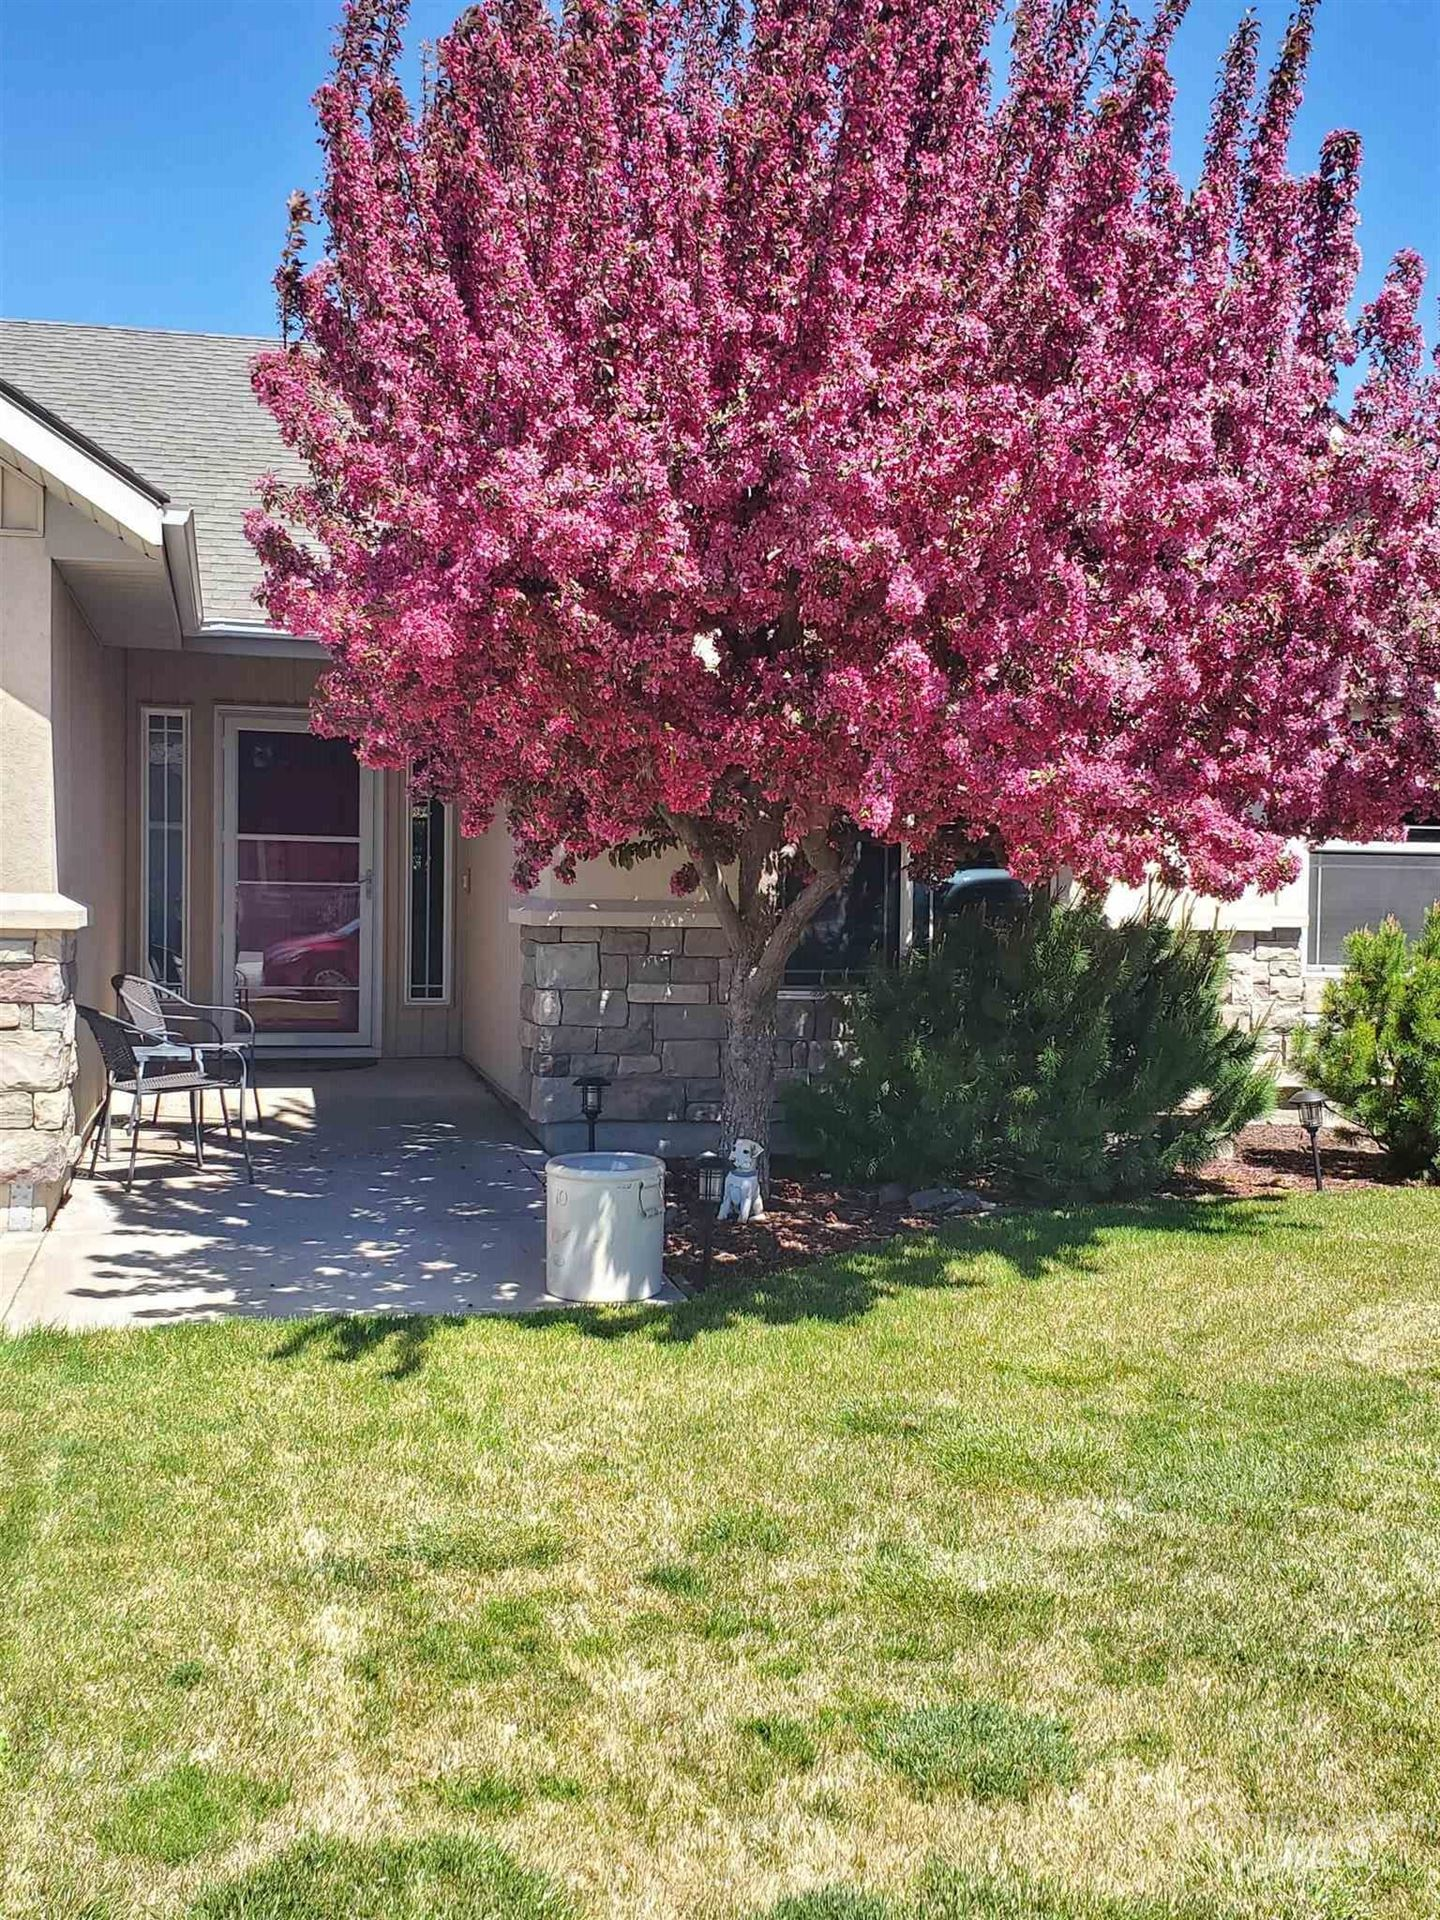 Photo of 466 Pioneer Path, Twin Falls, ID 83301 (MLS # 98794857)